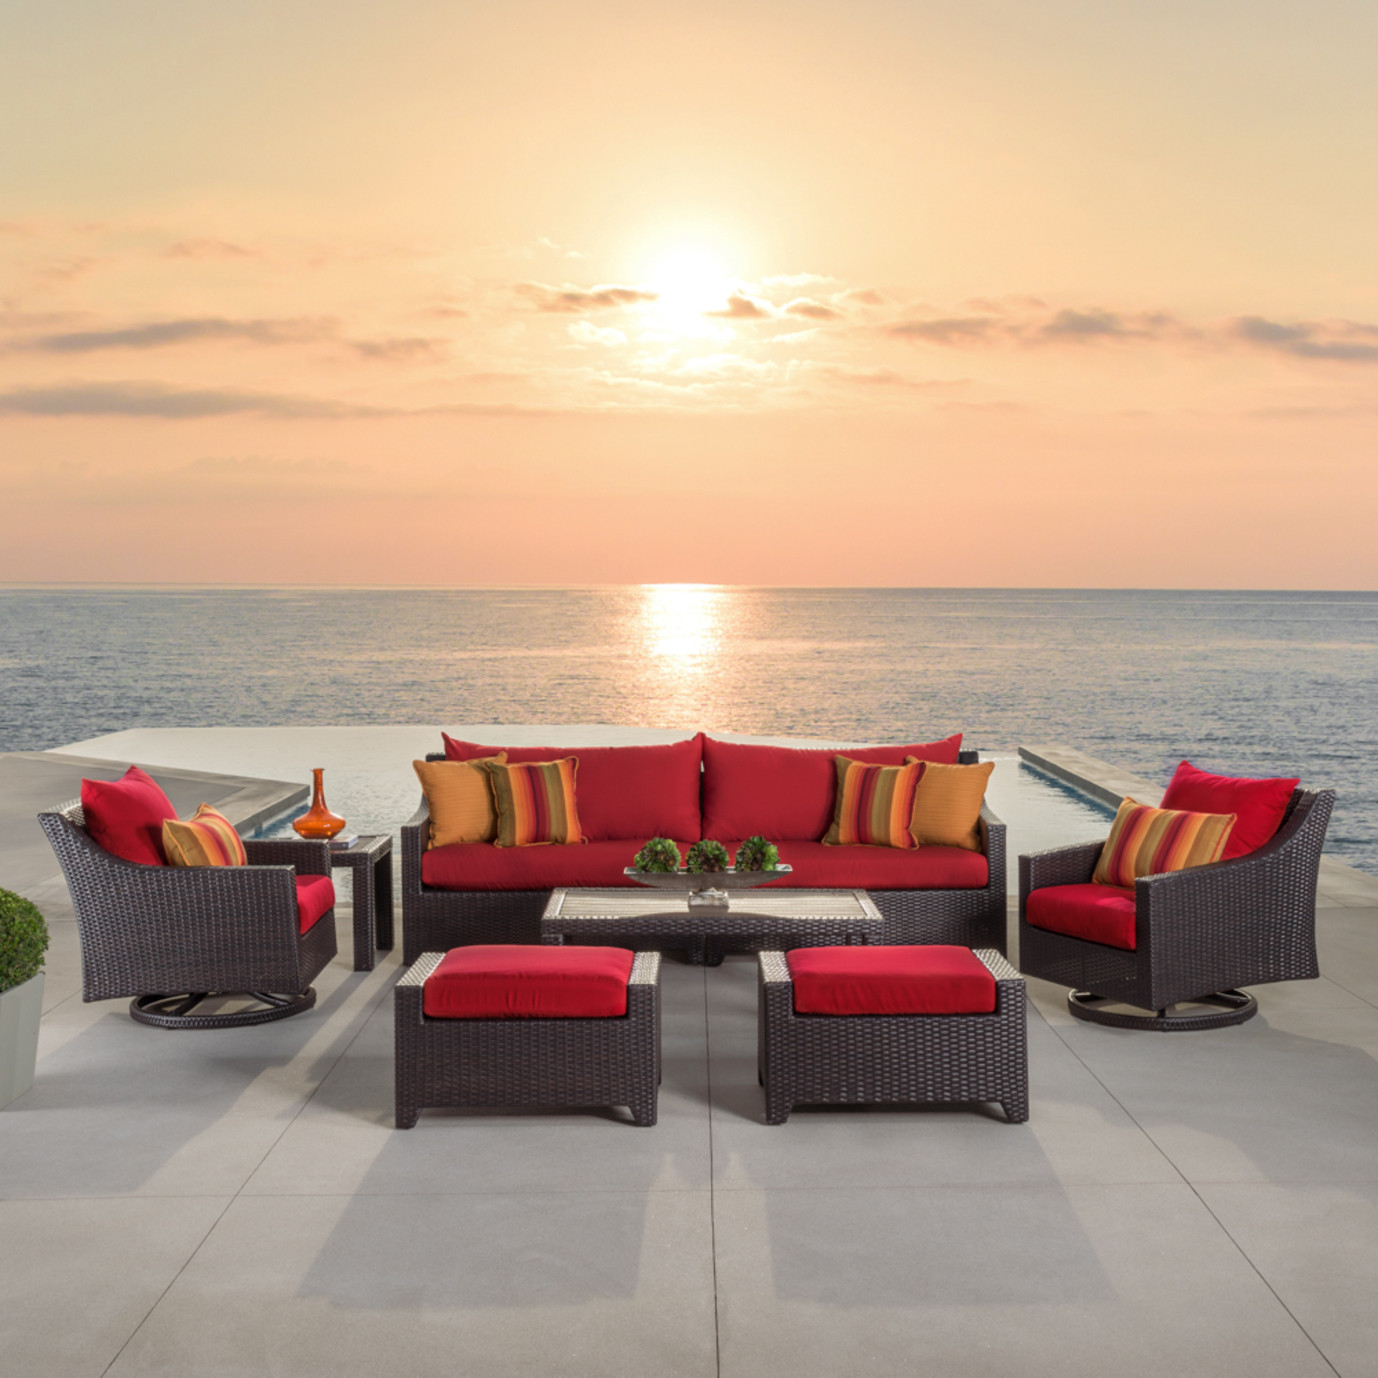 Deco™ Deluxe 8pc Sofa & Motion Club Chair Set - Sunset Red